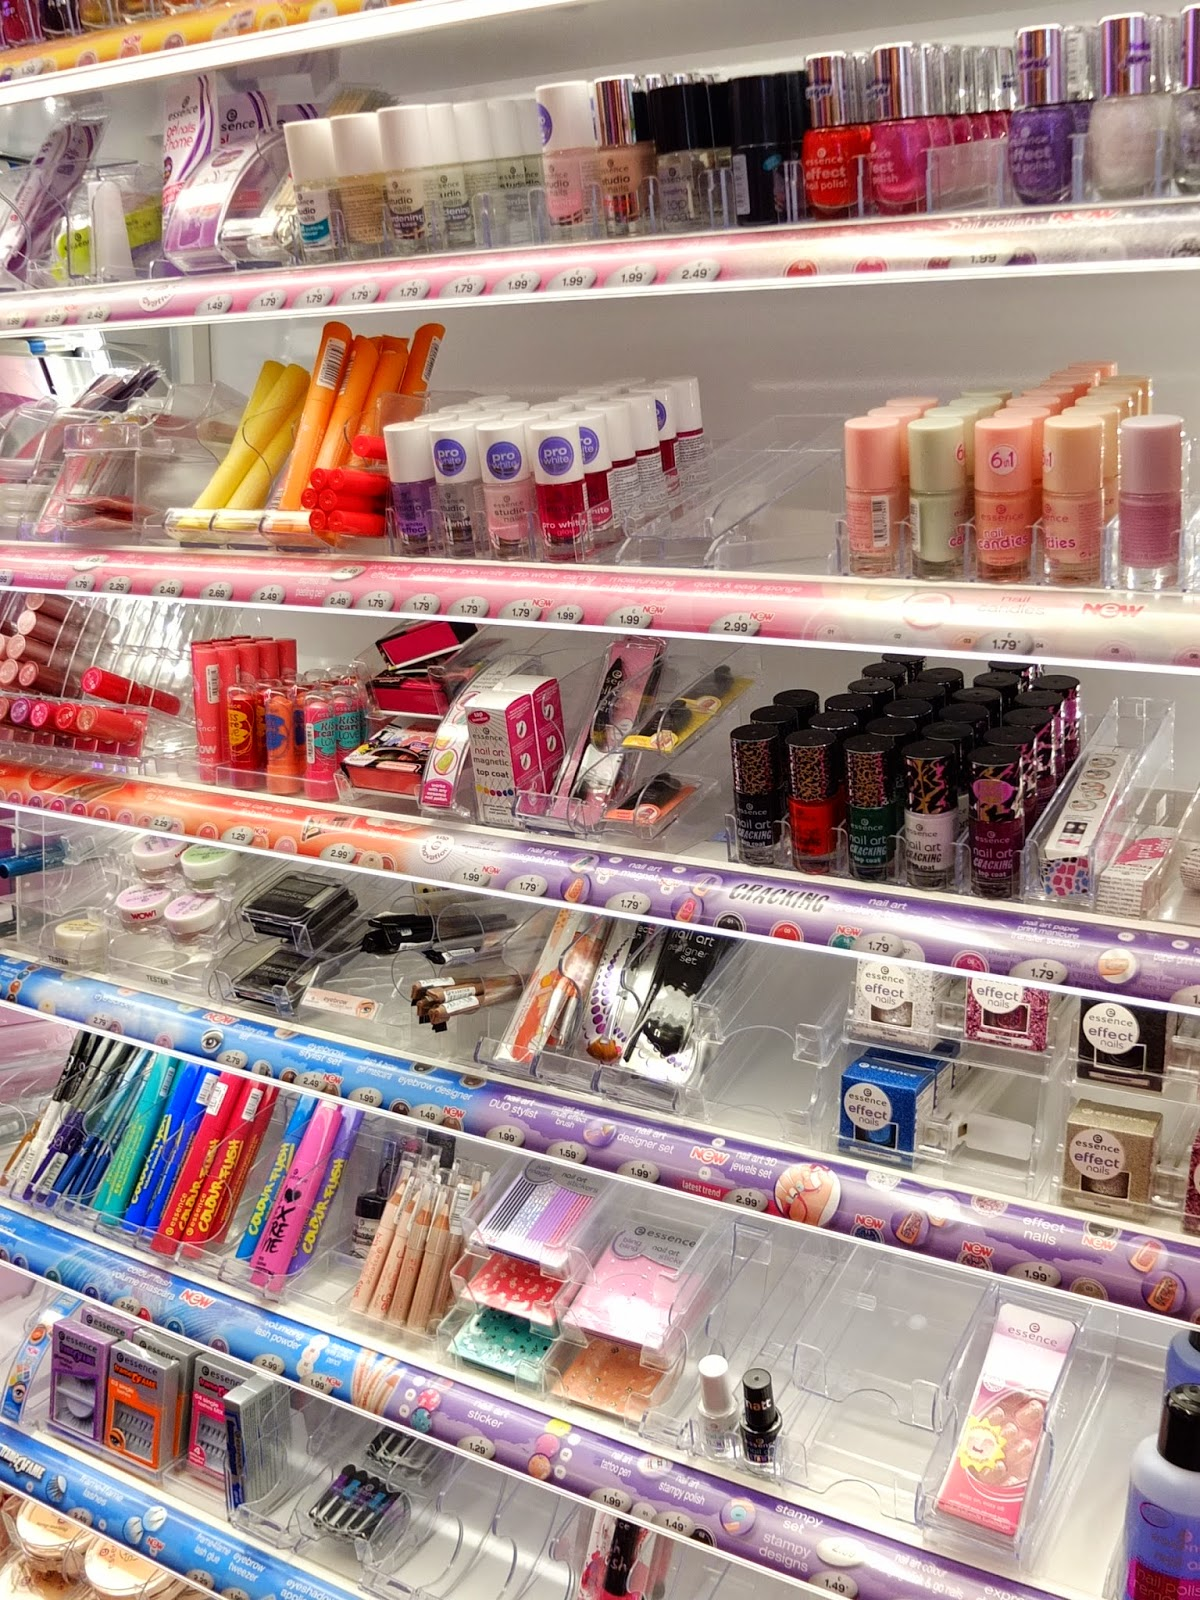 Essence Make Up Launches in the UK. Find out where the buy Essence make up in England.